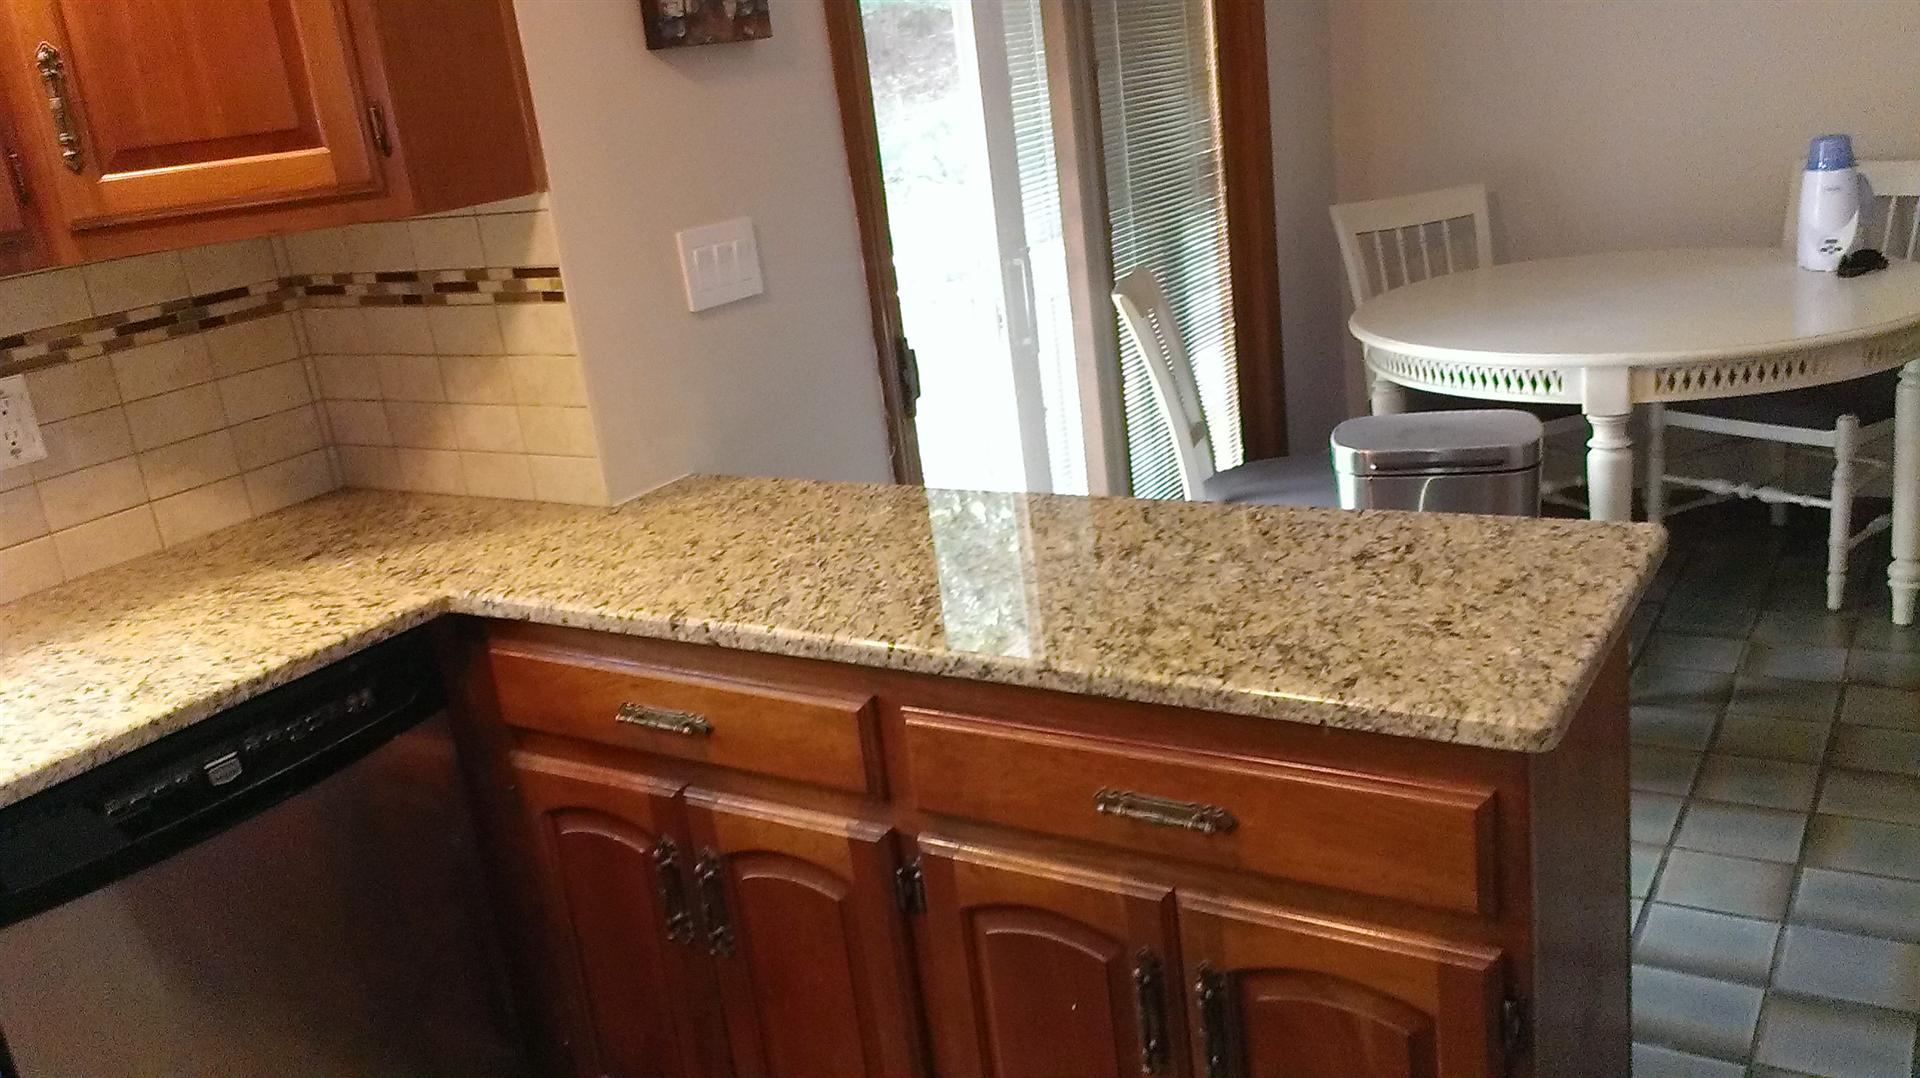 New Grante Countertops On Peninsula In Mountainside, NJ.